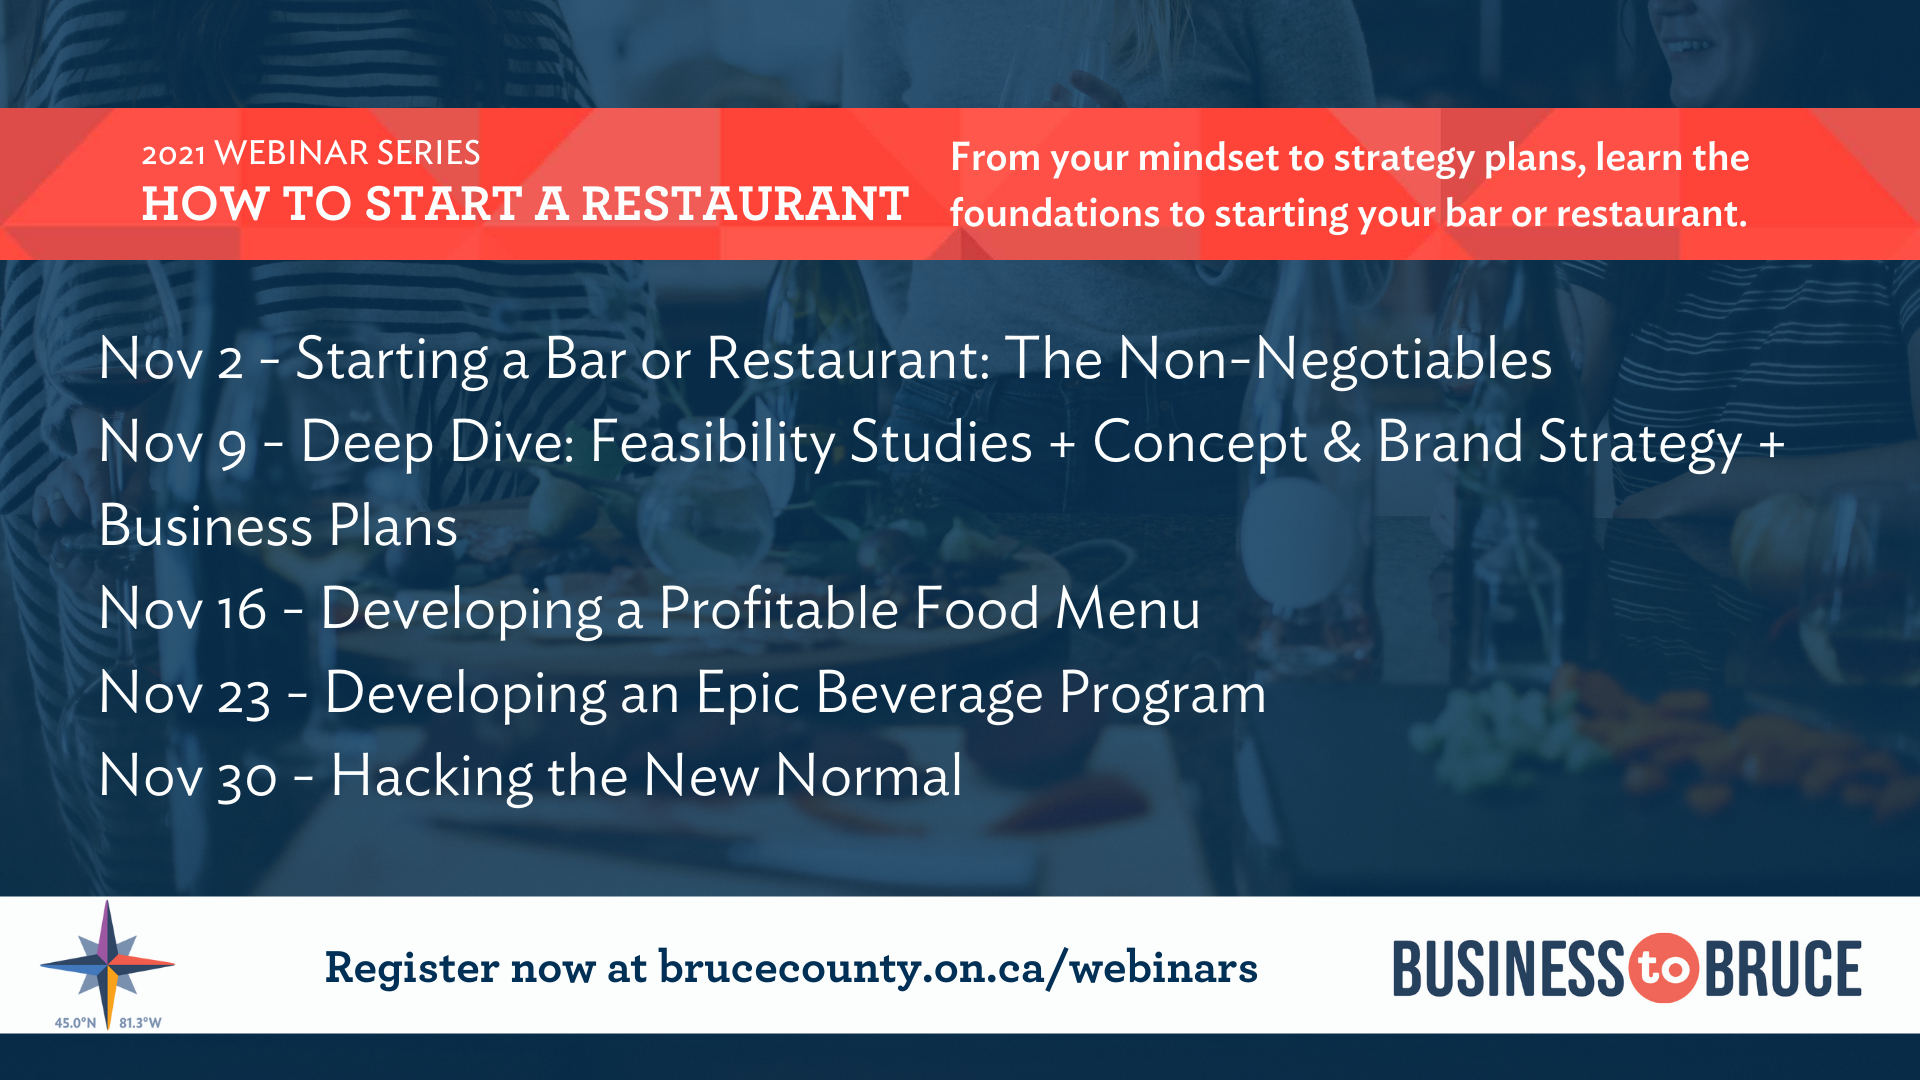 Business to Bruce Poster: The How to Start a Restaurant Series : From your mindset to strategy plans, learn the foundations to starting your bar or restaurant.